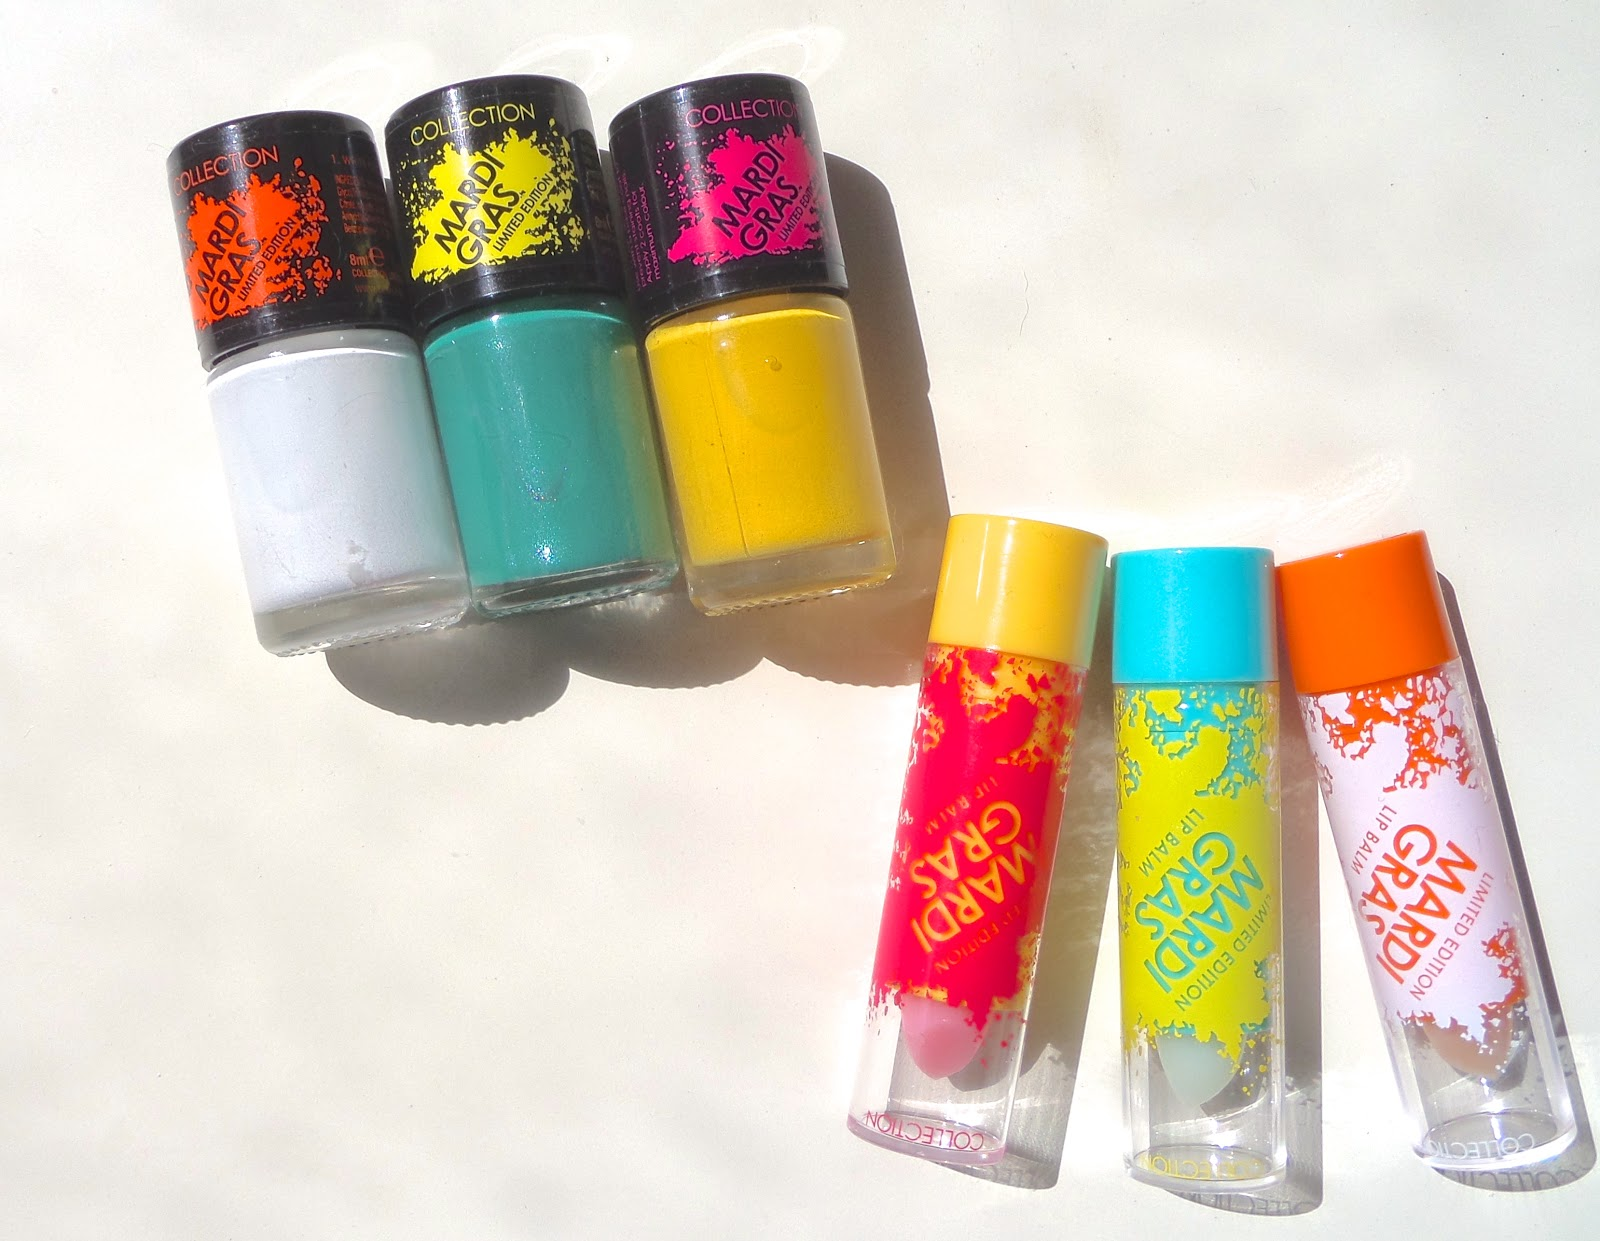 Collection Cosmetics Mardi Gras Summer Collection Review and Swatches